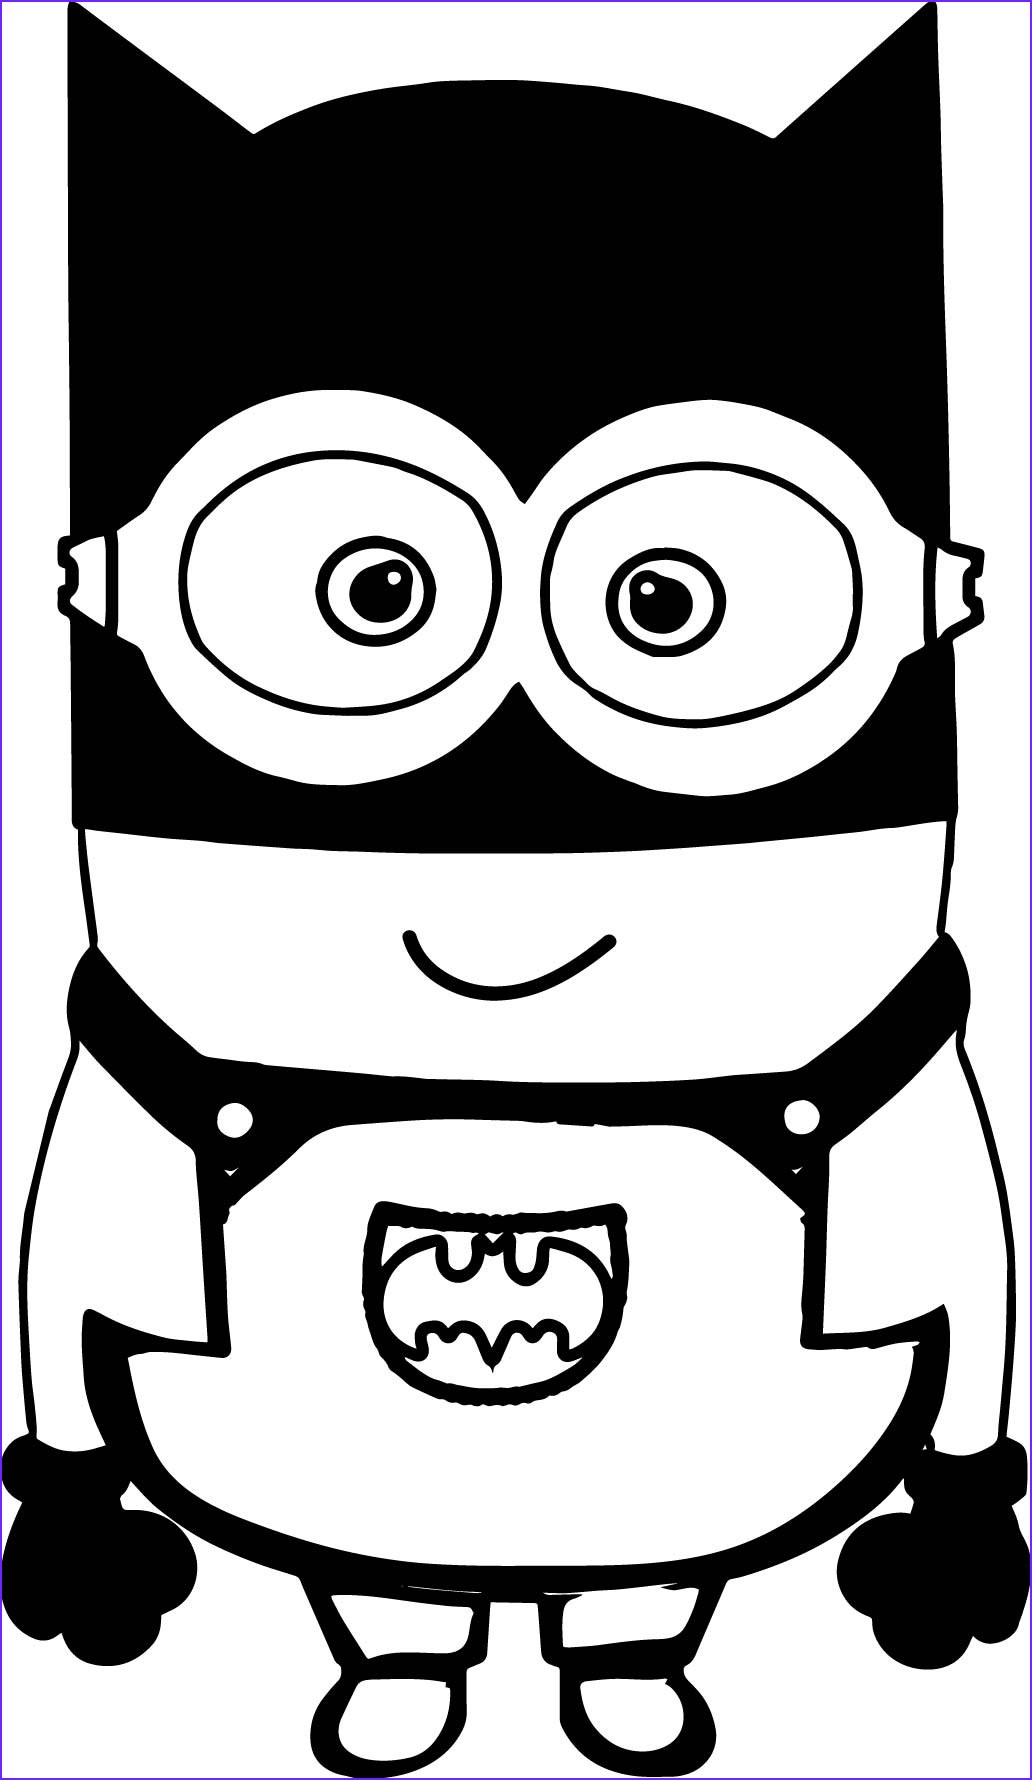 Minions Coloring Page Luxury Photos Minions Cartoon Drawing at Getdrawings